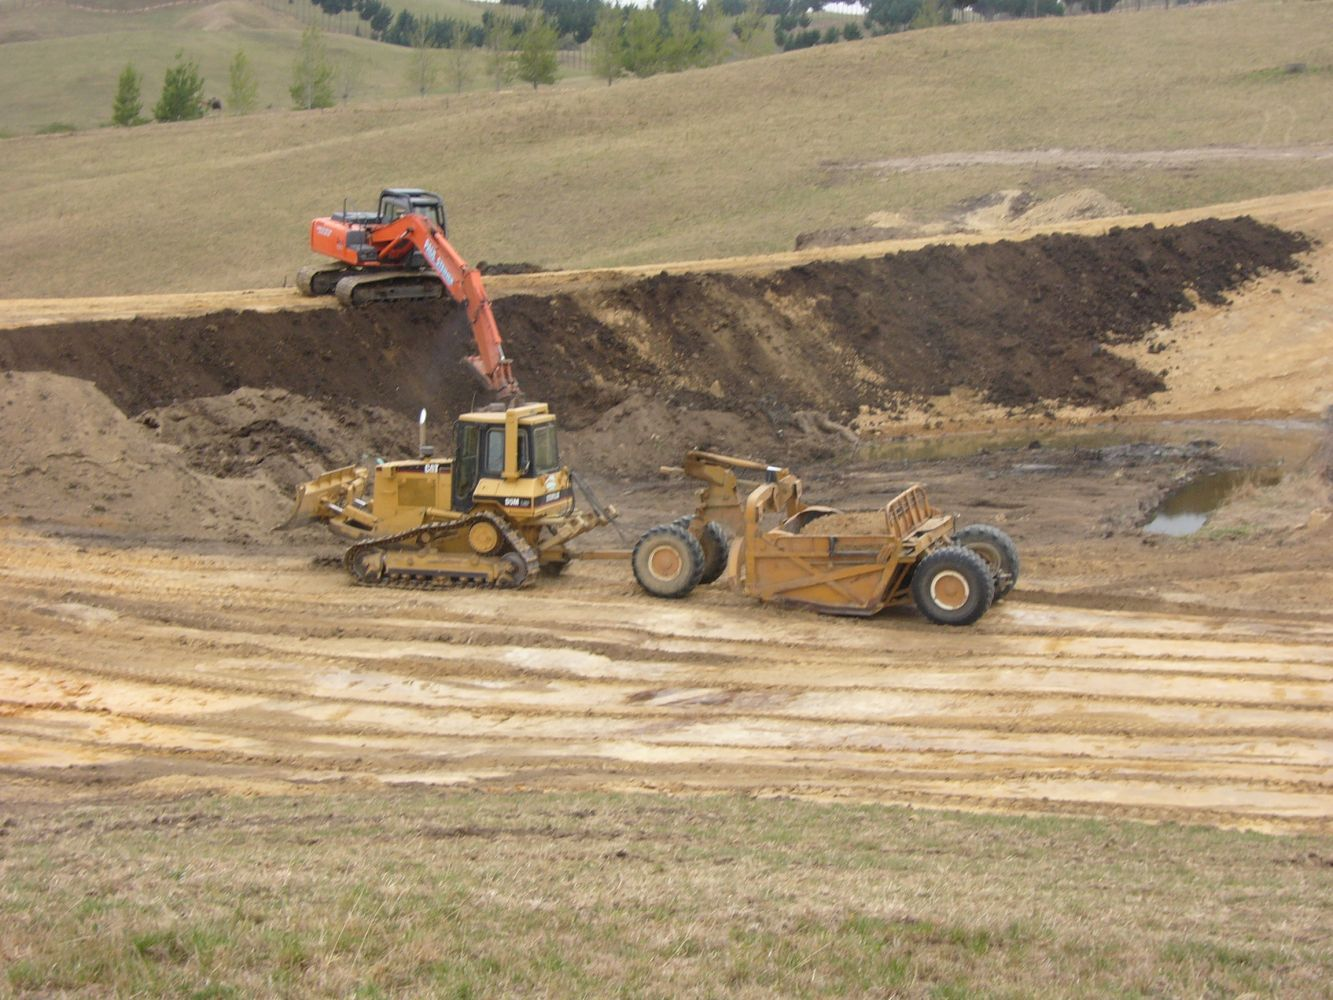 Three different earthmoving machines on site